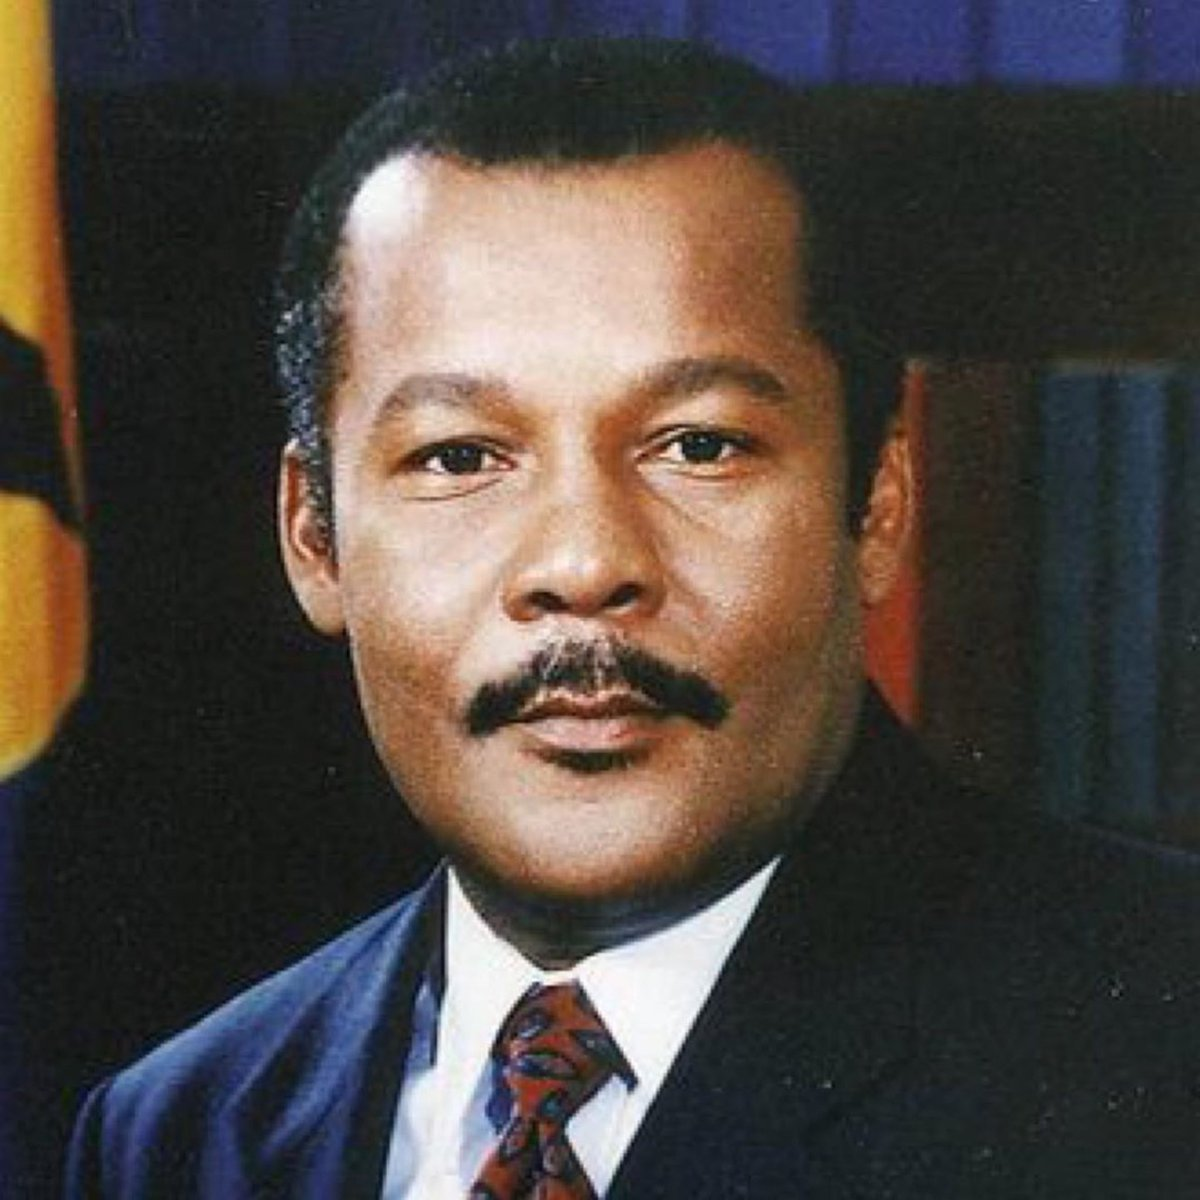 Today Barbados lost one of our greatest leaders, the Honorable Mr. Owen S. Arthur! A true hero! My thoughts are with his family and the entire nation of Barbados! Rest In Paradise! 🇧🇧🇧🇧🇧🇧 https://t.co/uTYYdVj6i2